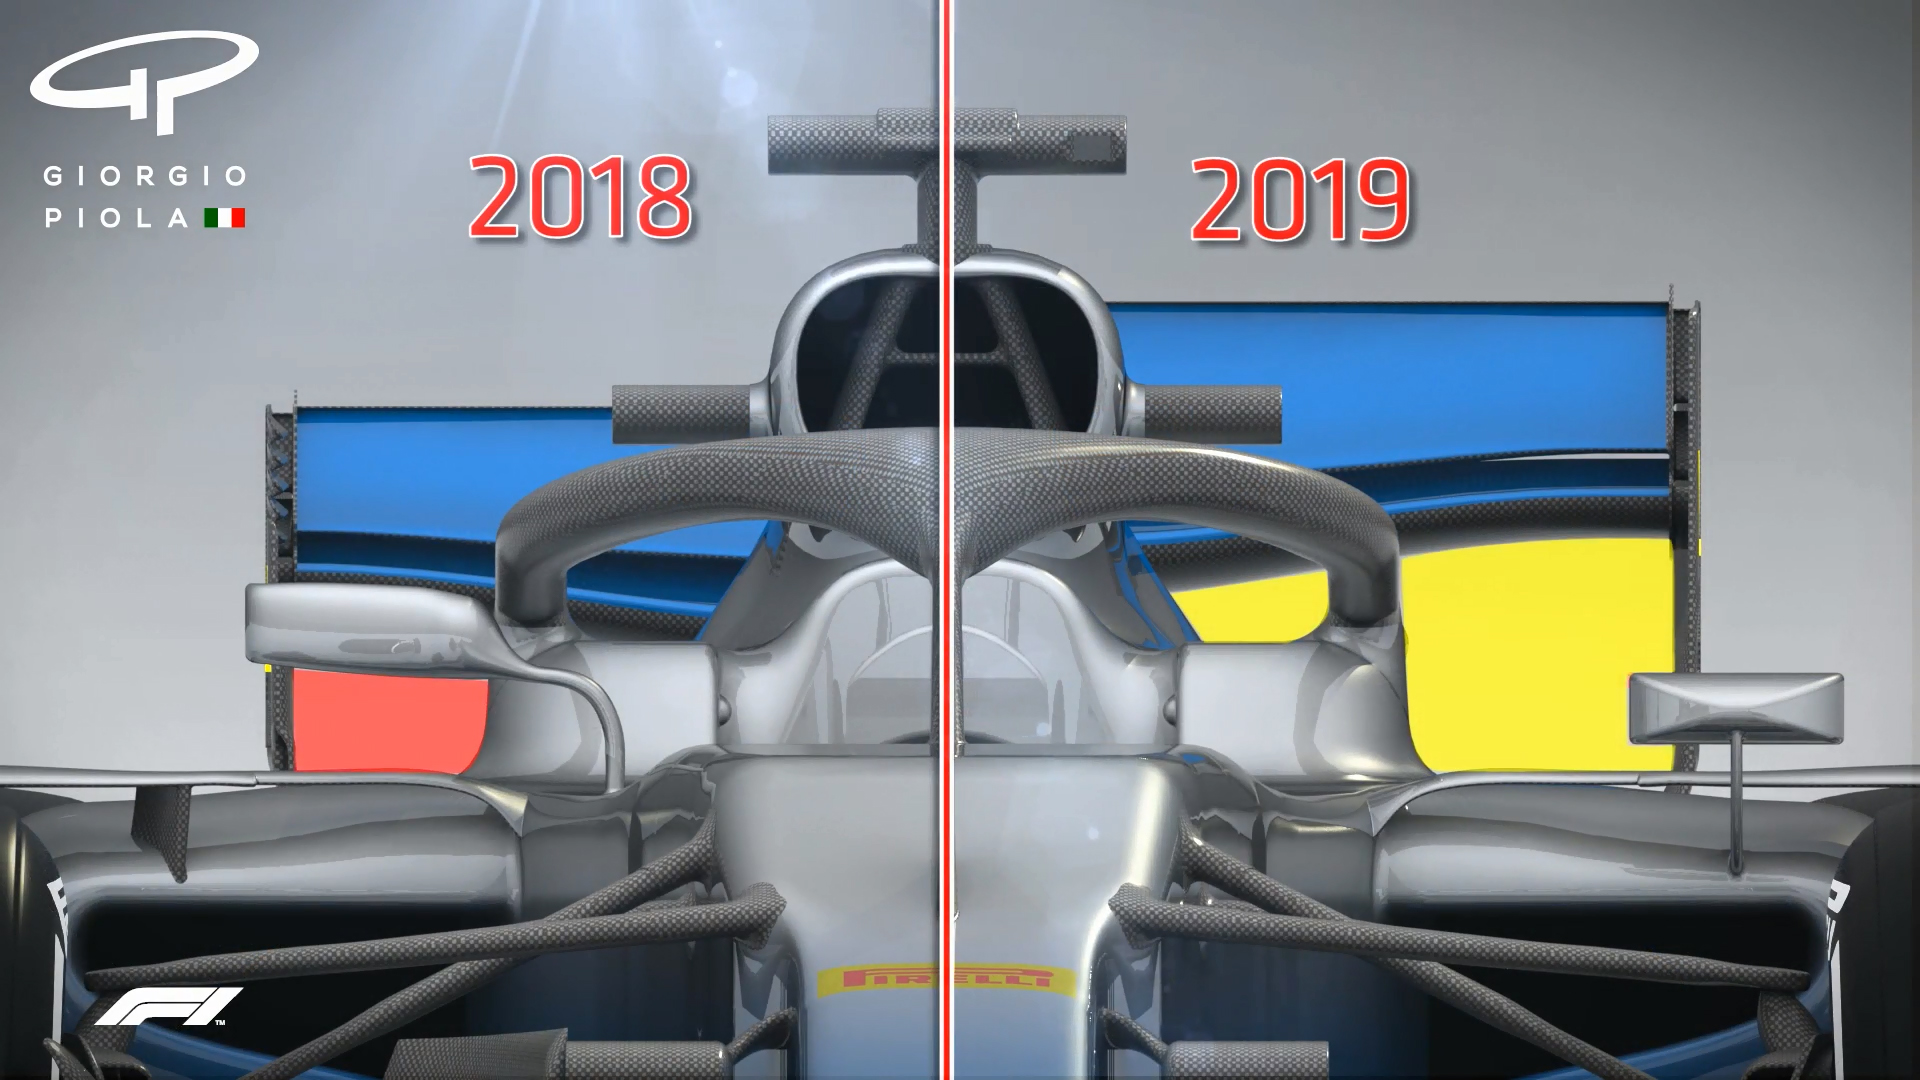 F1 RULES & REGULATIONS: What's new for 2019? | Formula 1®